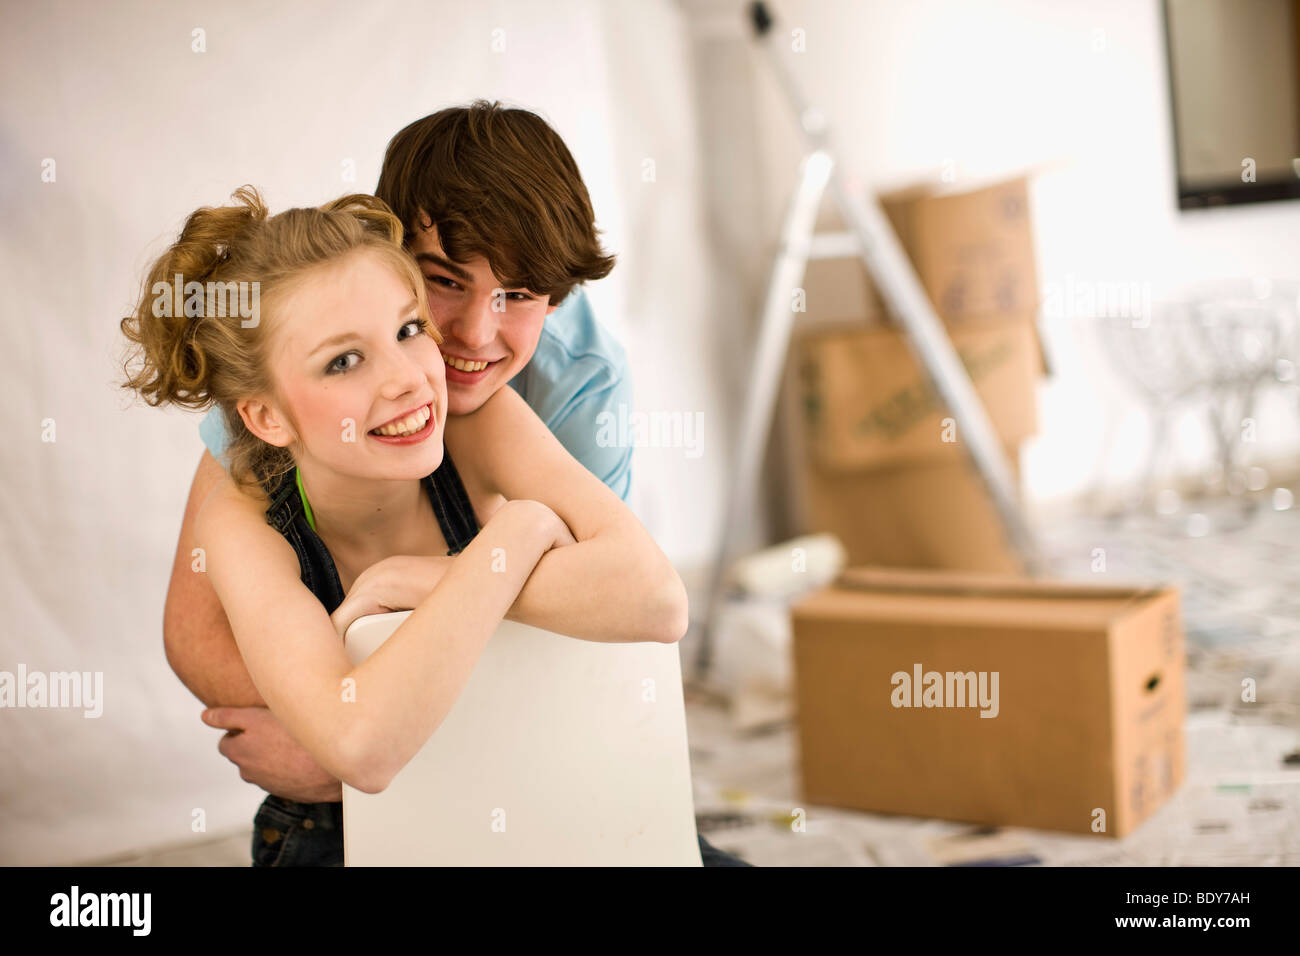 Removal; First love; move together - Stock Image